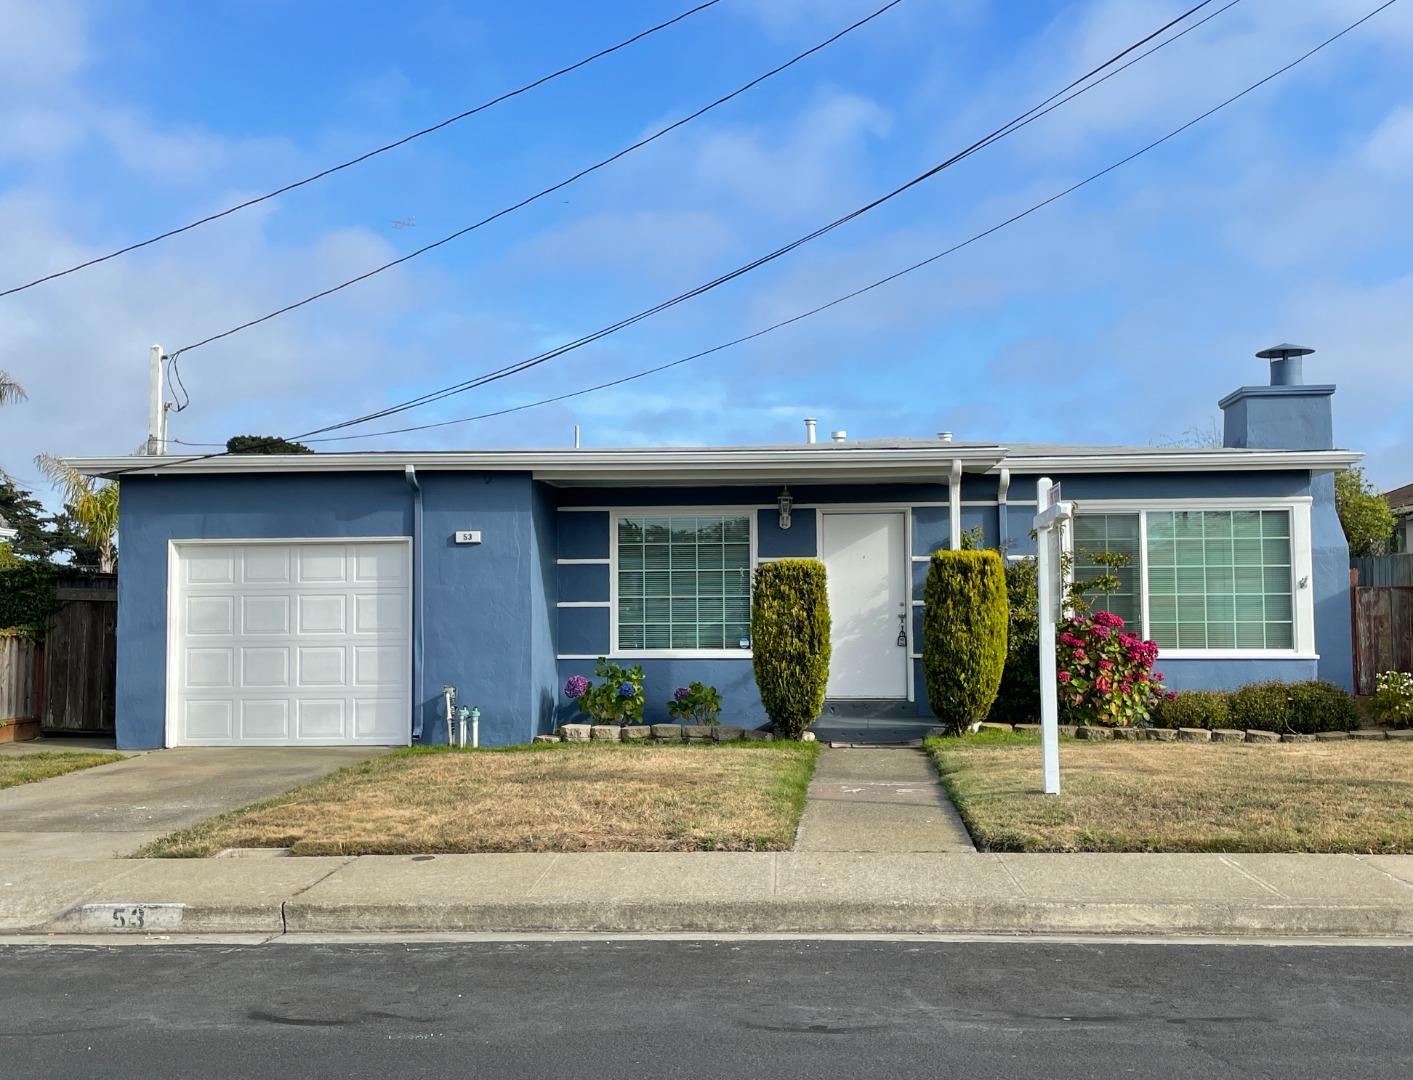 Nice and bright Winston Manor rancher in the heart of the Peninsula. Featuring 3 bedrooms, 1 bath, gleaming wood laminate floor, remodeled kitchen with granite counter top, upgraded bath, double paned windows, extra large lot with lots of potential. Centrally located near shops, restaurants, schools, Bart station and easy access to freeway 280.